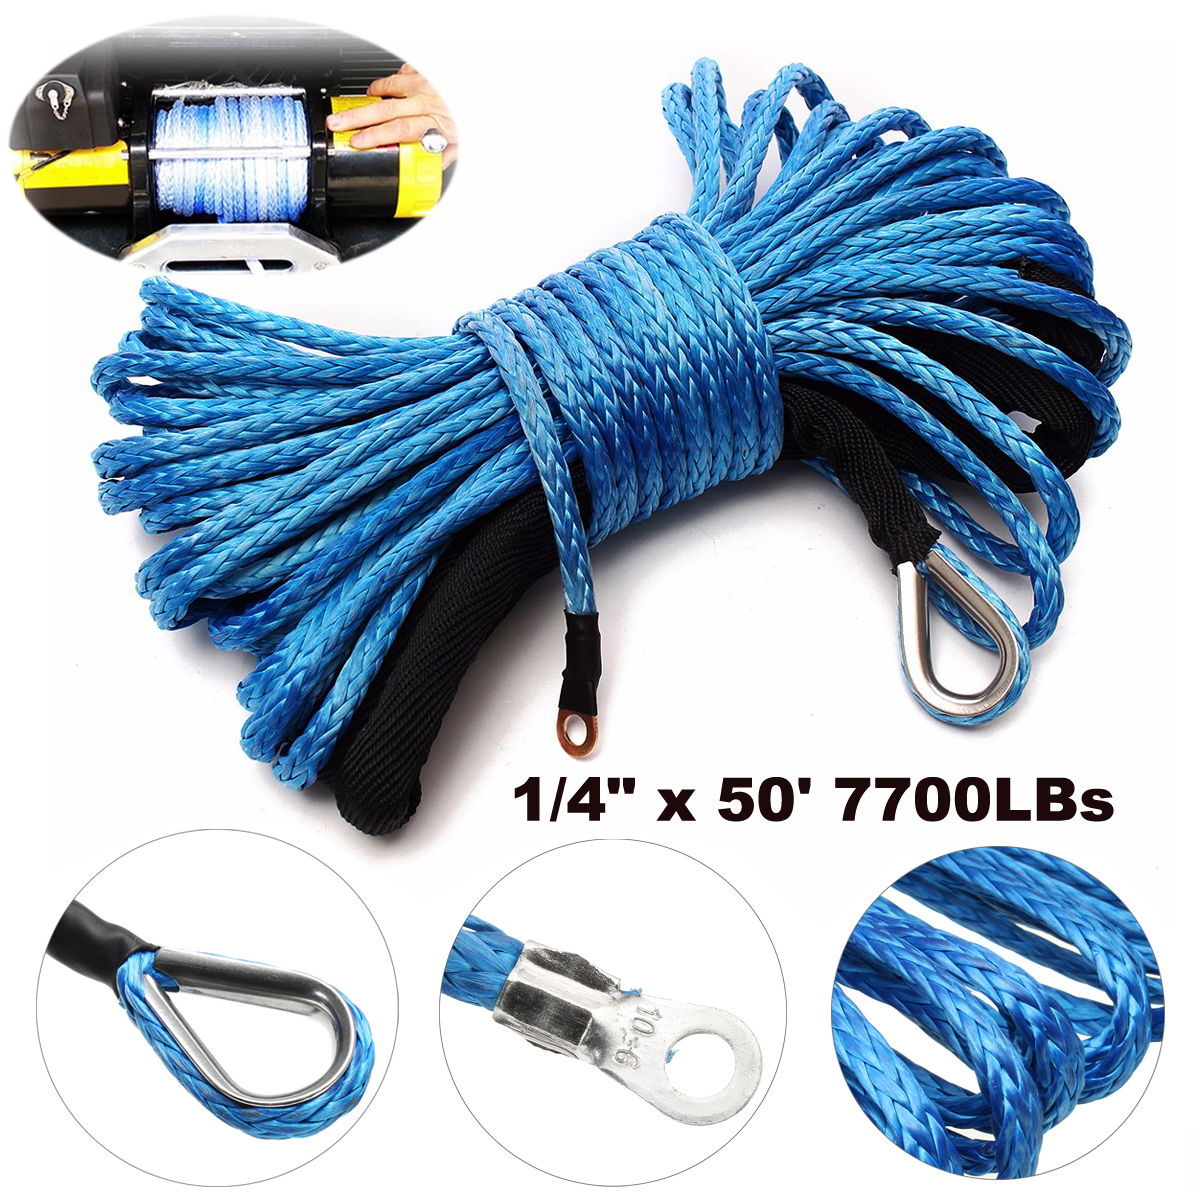 6MMx15M 50inch Winch Rope Synthetic 7700lbs SK78 Boat Car Recovery Strap Fairlead